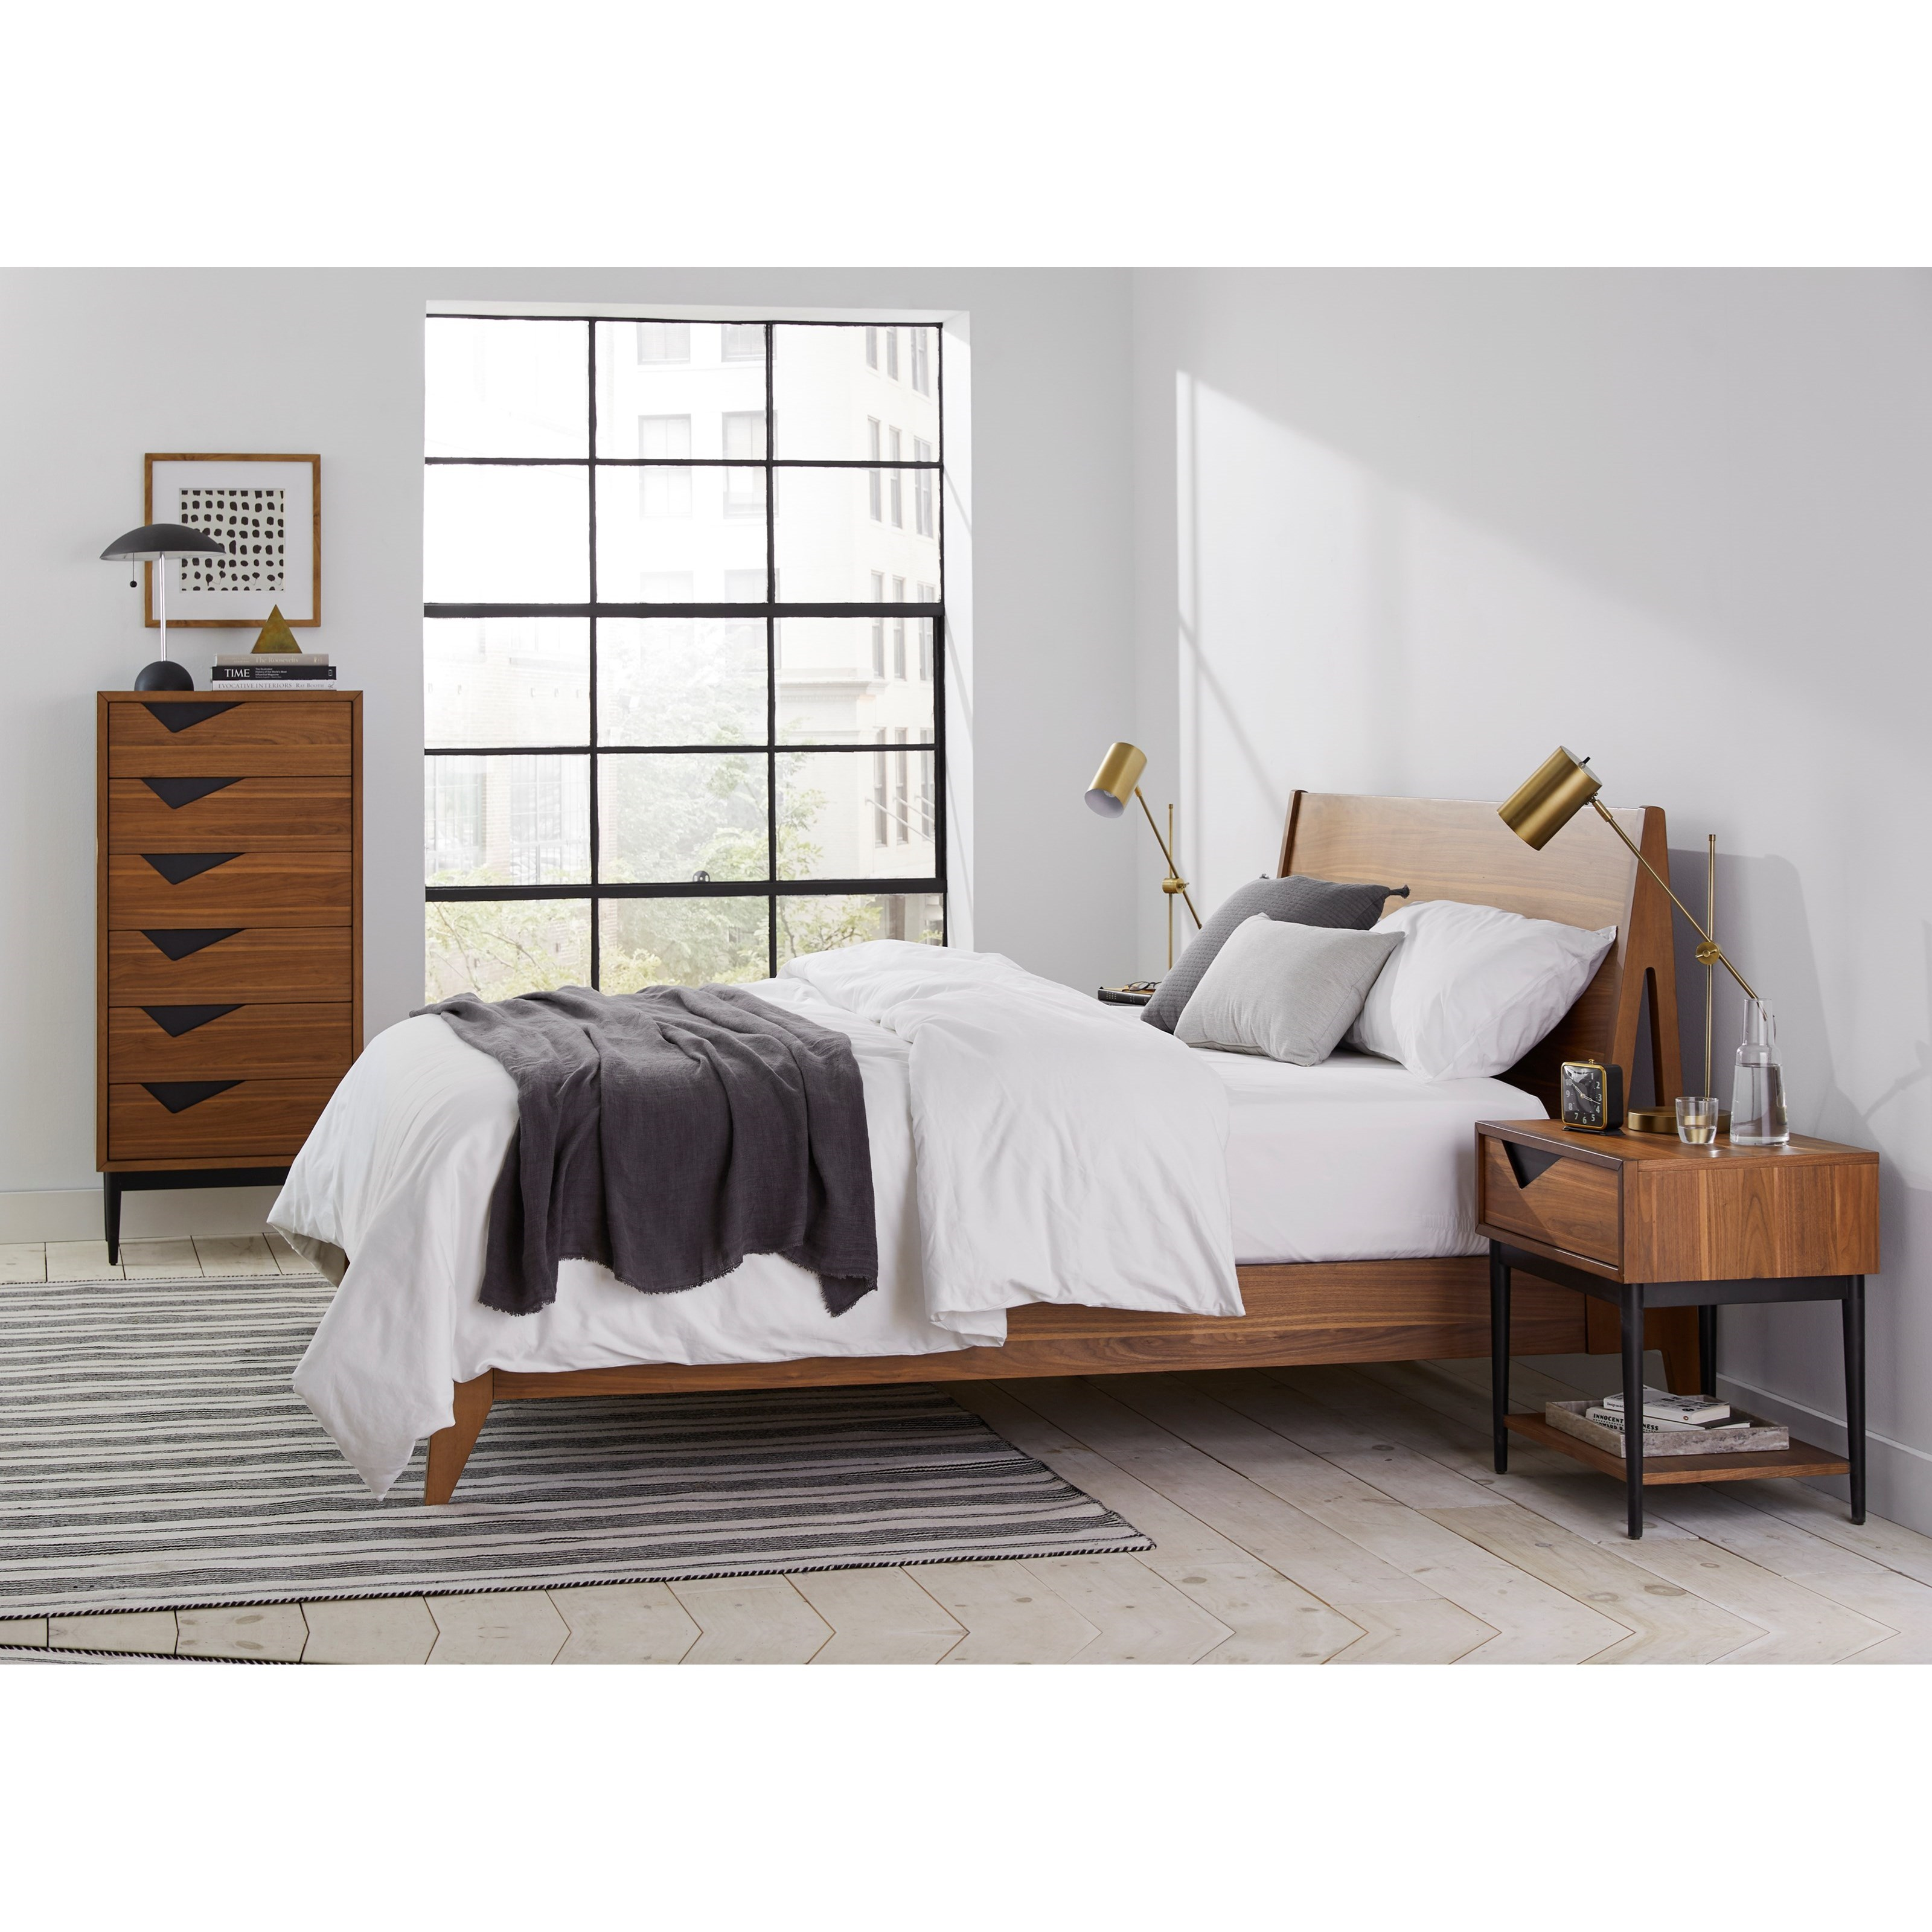 Bobby Berk King Bedroom Group by A.R.T. Furniture Inc at Home Collections Furniture